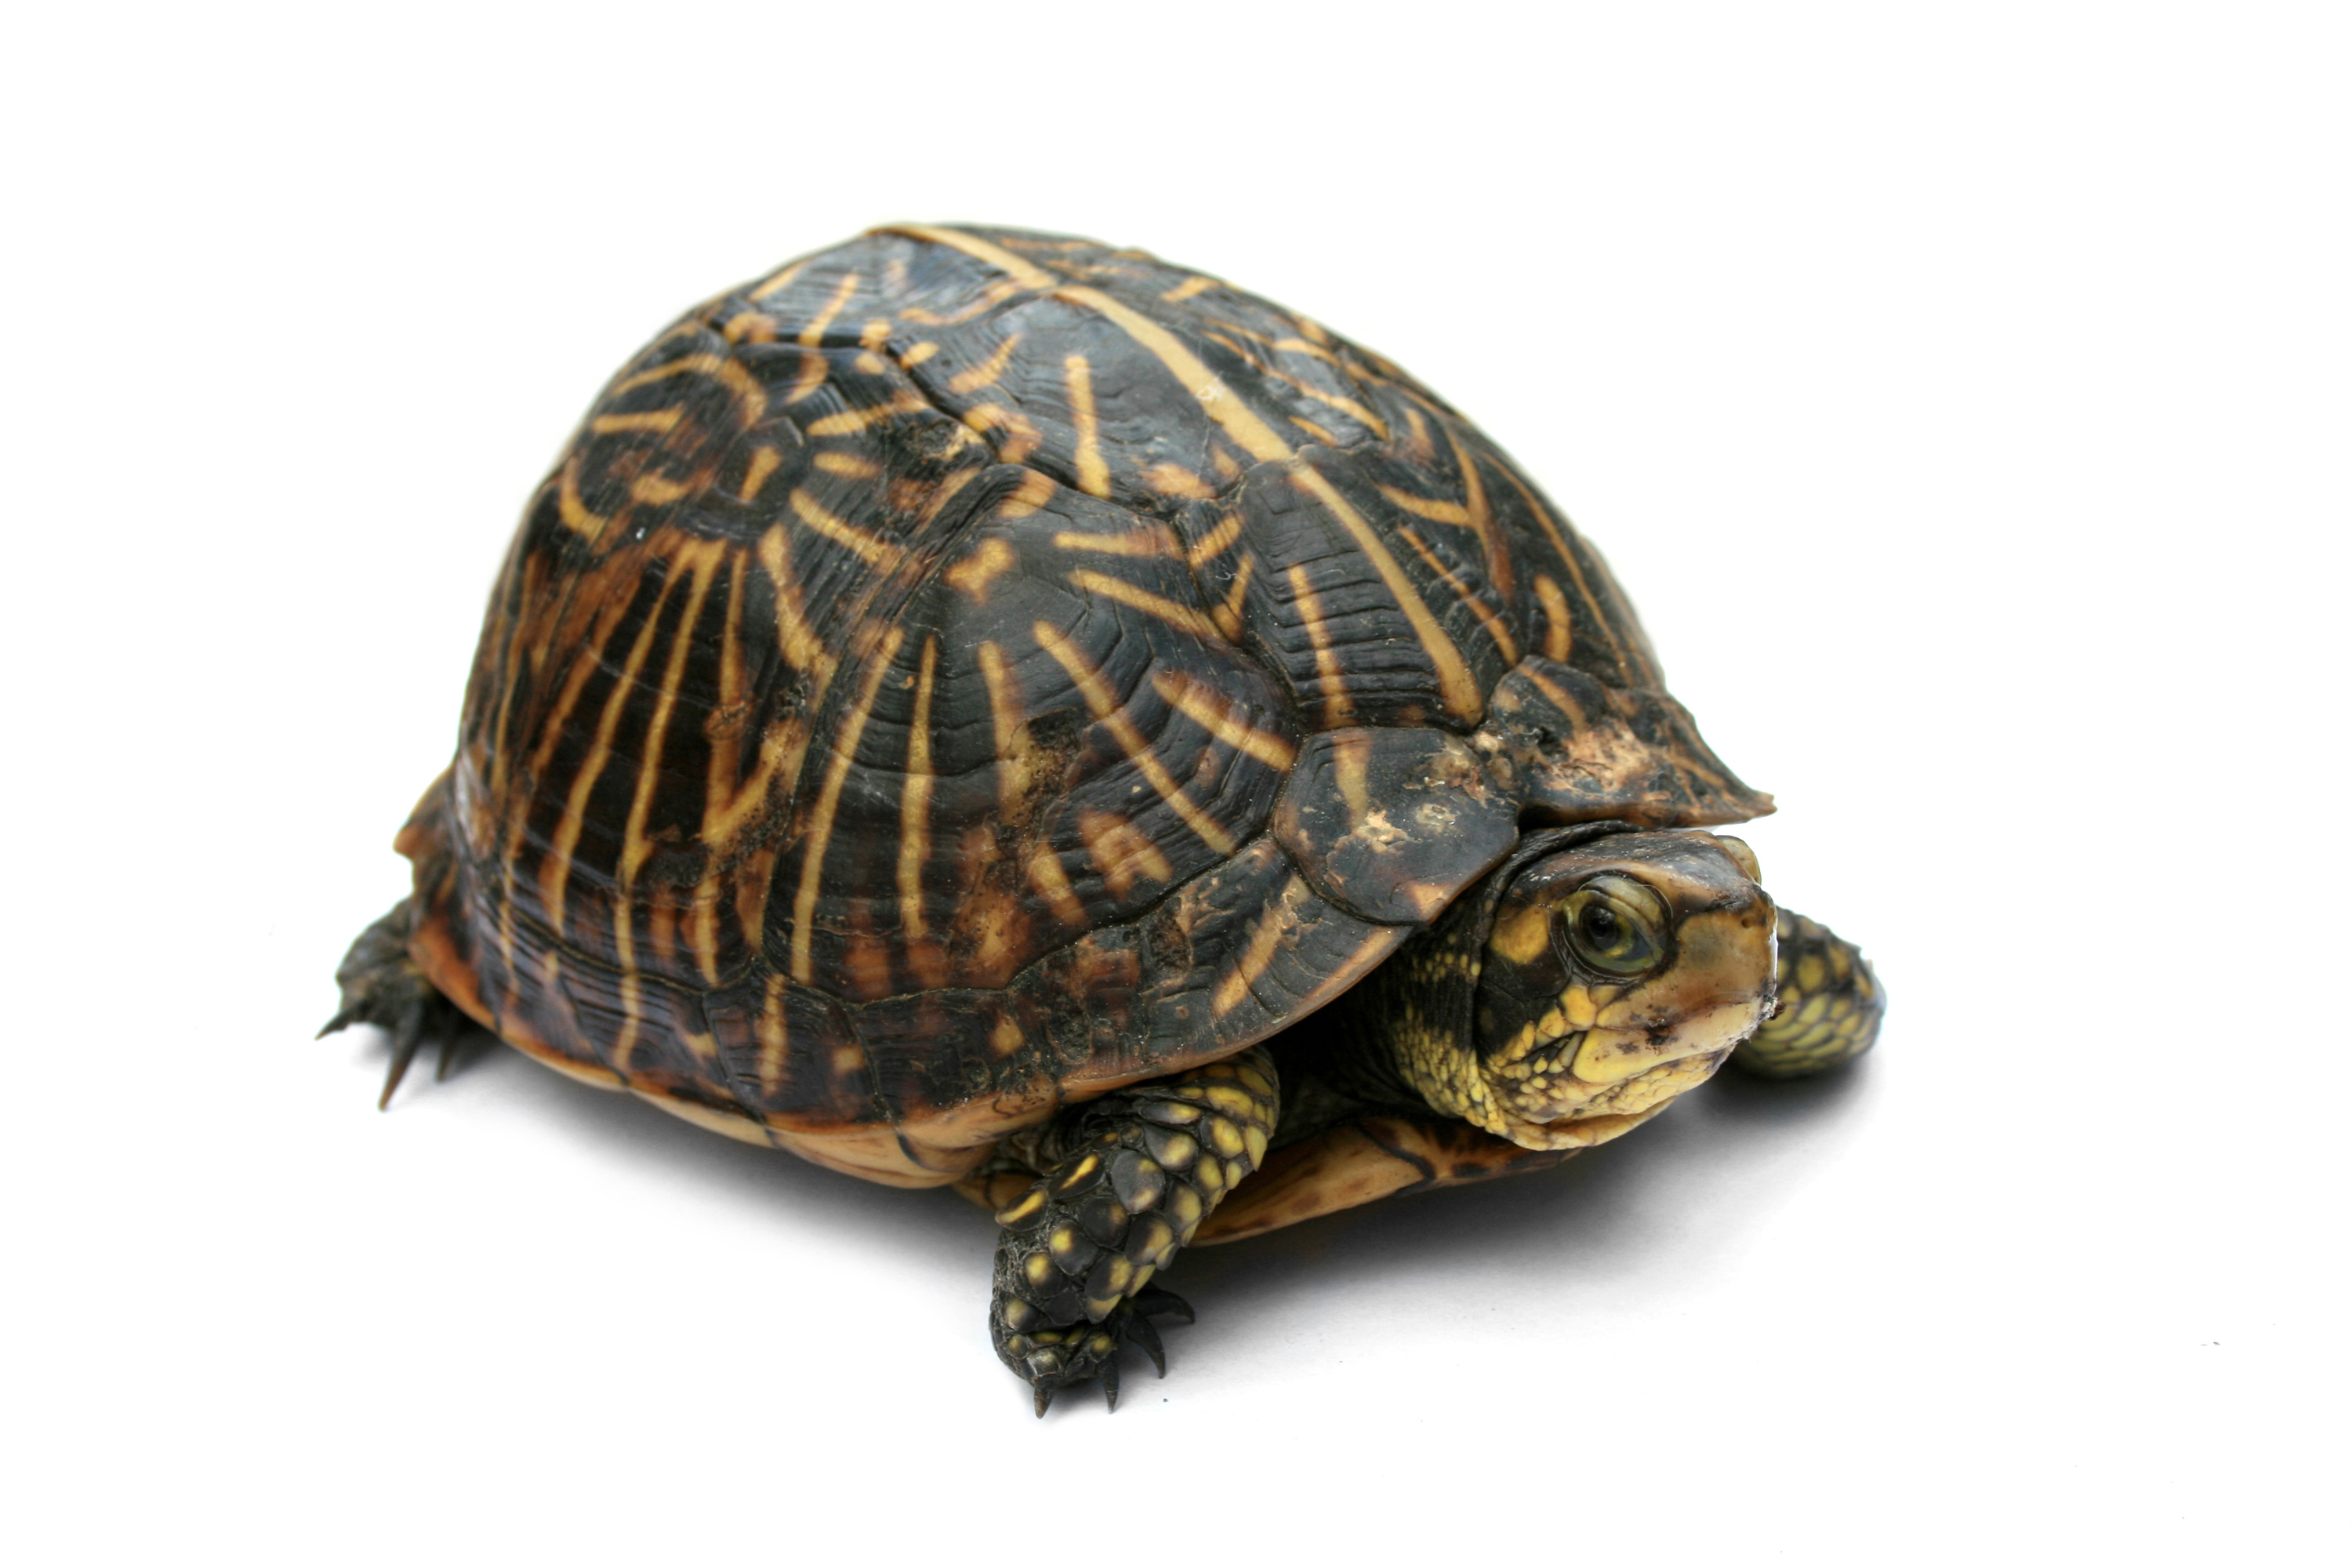 File:Florida Box Turtle Digon3.jpg - Wikipedia, the free encyclopedia